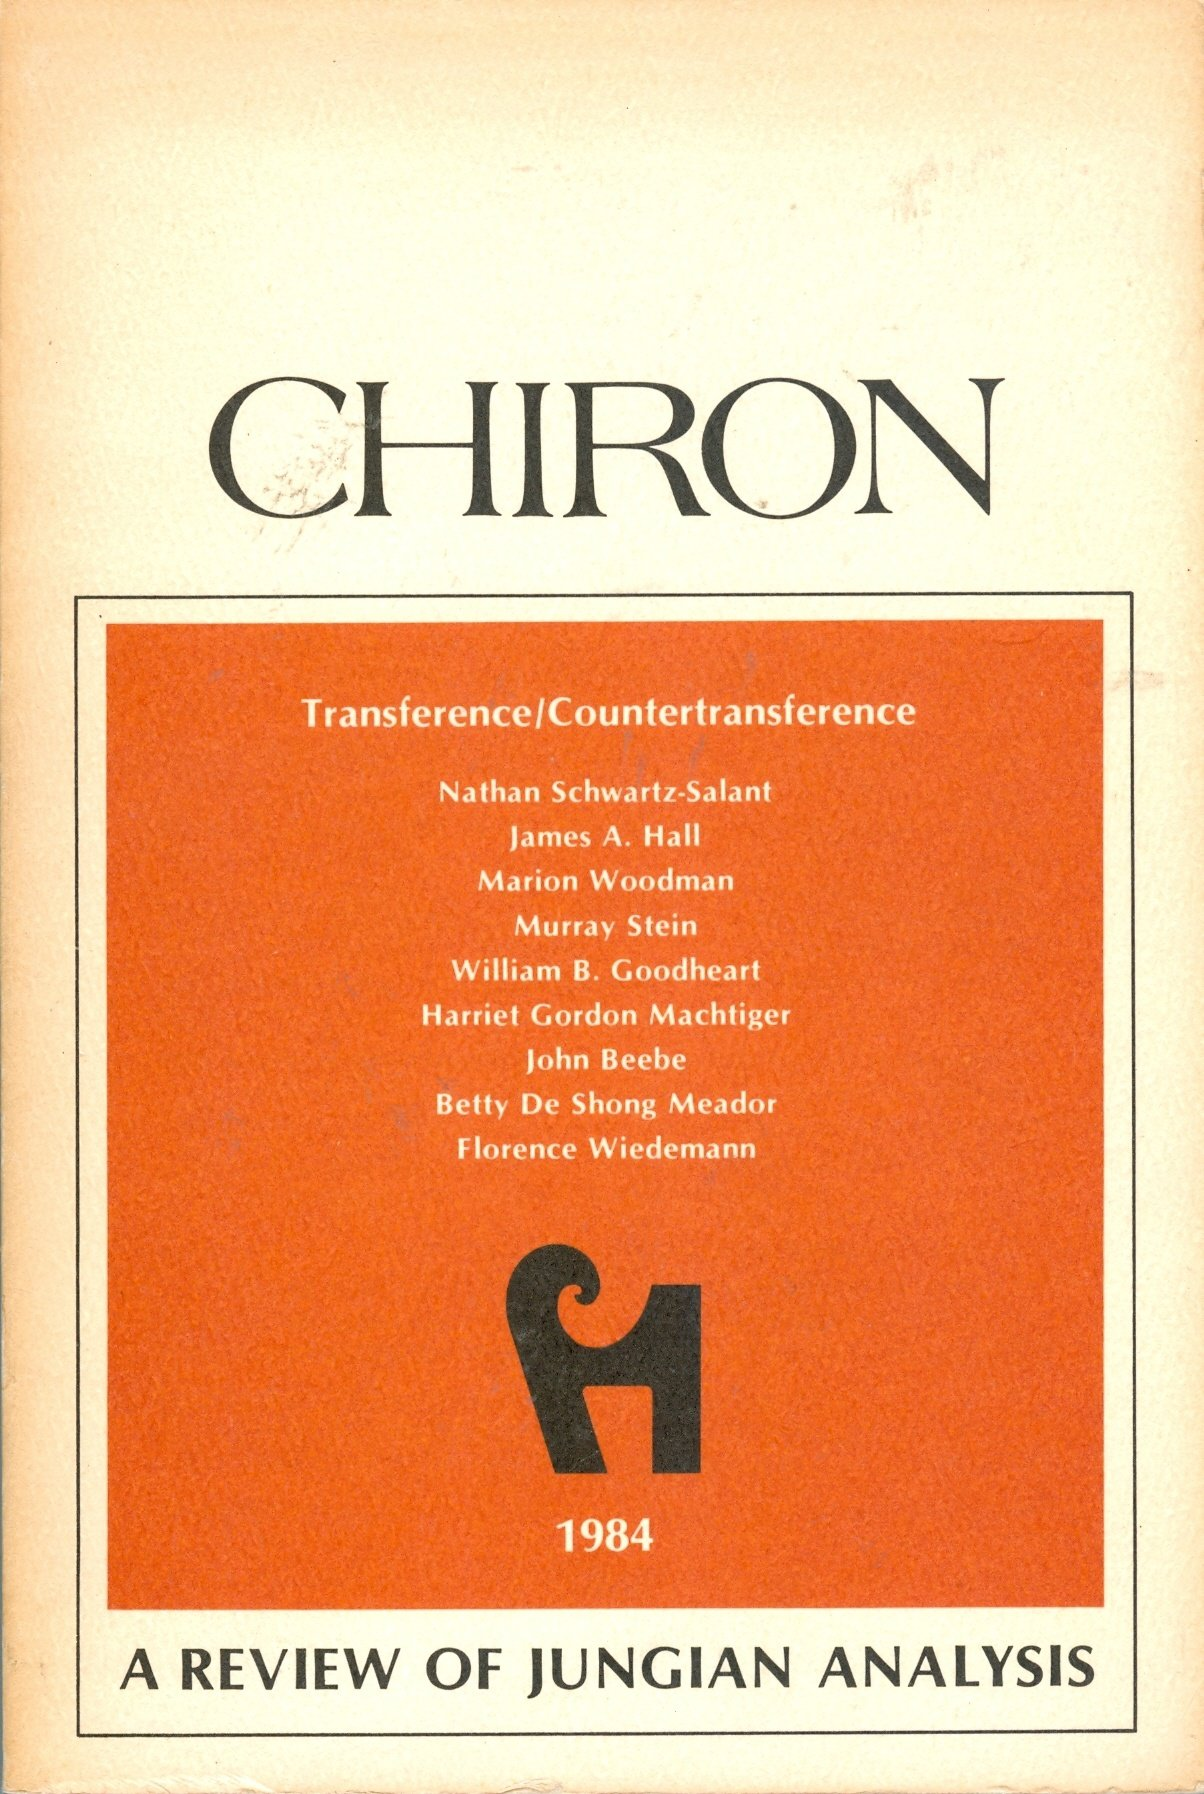 Image for Chiron: Transference/Countertransference (A Review of Jungian Analysis)